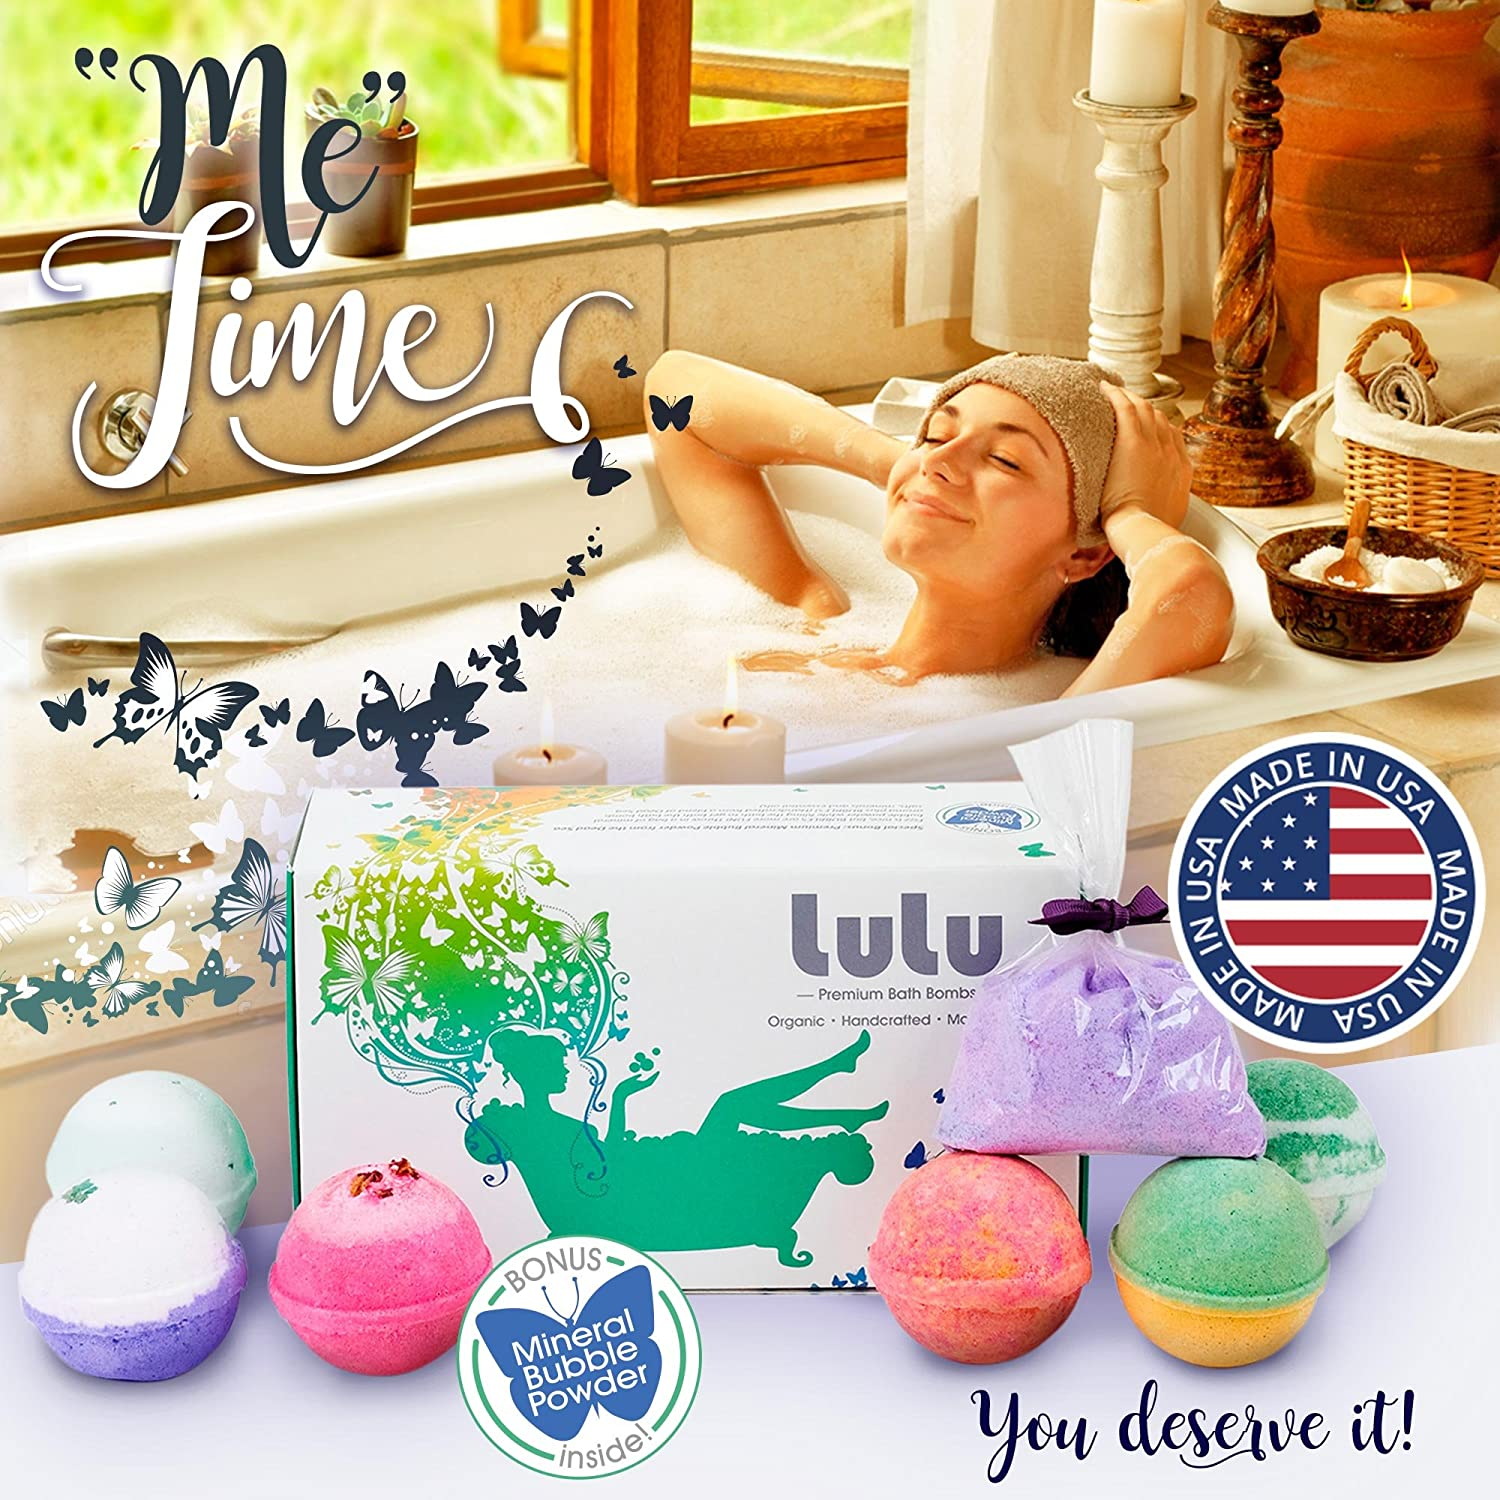 In the bathroom while taking a shower or a well deserved bubble bath - Amazon Com Lulu Bath Bomb Gift Set Beauty Relaxation Stress Relief Soak For Tub Essential Oils Natural And Organic Ingredients Makes Perfect